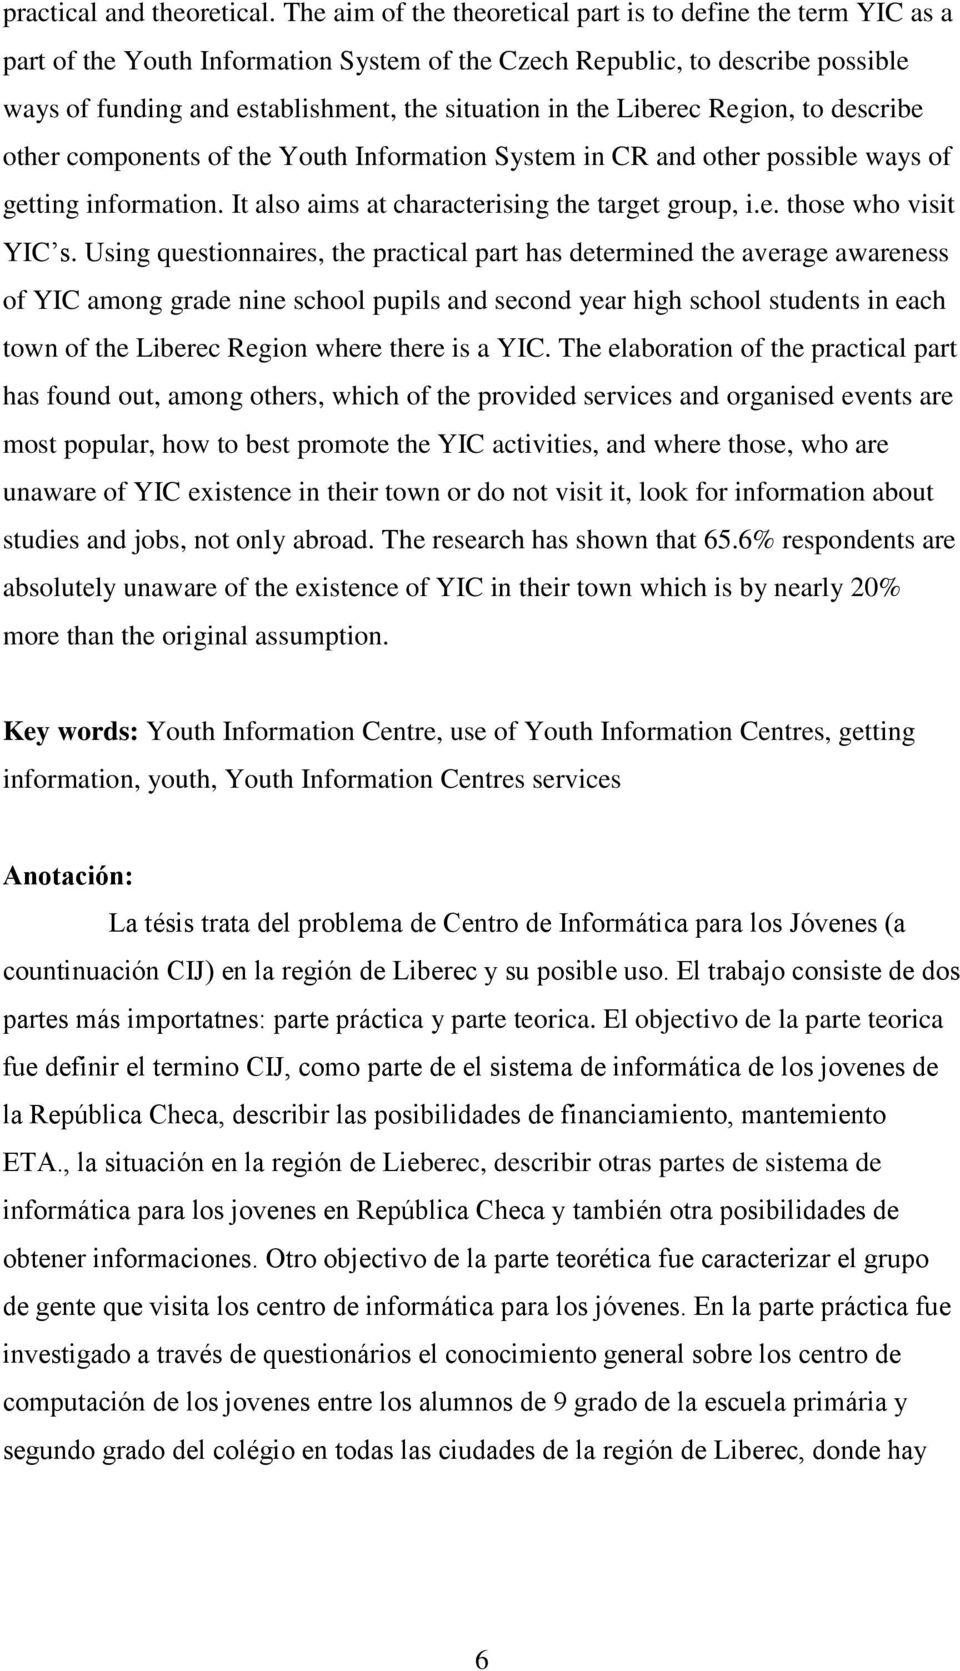 Liberec Region, to describe other components of the Youth Information System in CR and other possible ways of getting information. It also aims at characterising the target group, i.e. those who visit YIC s.